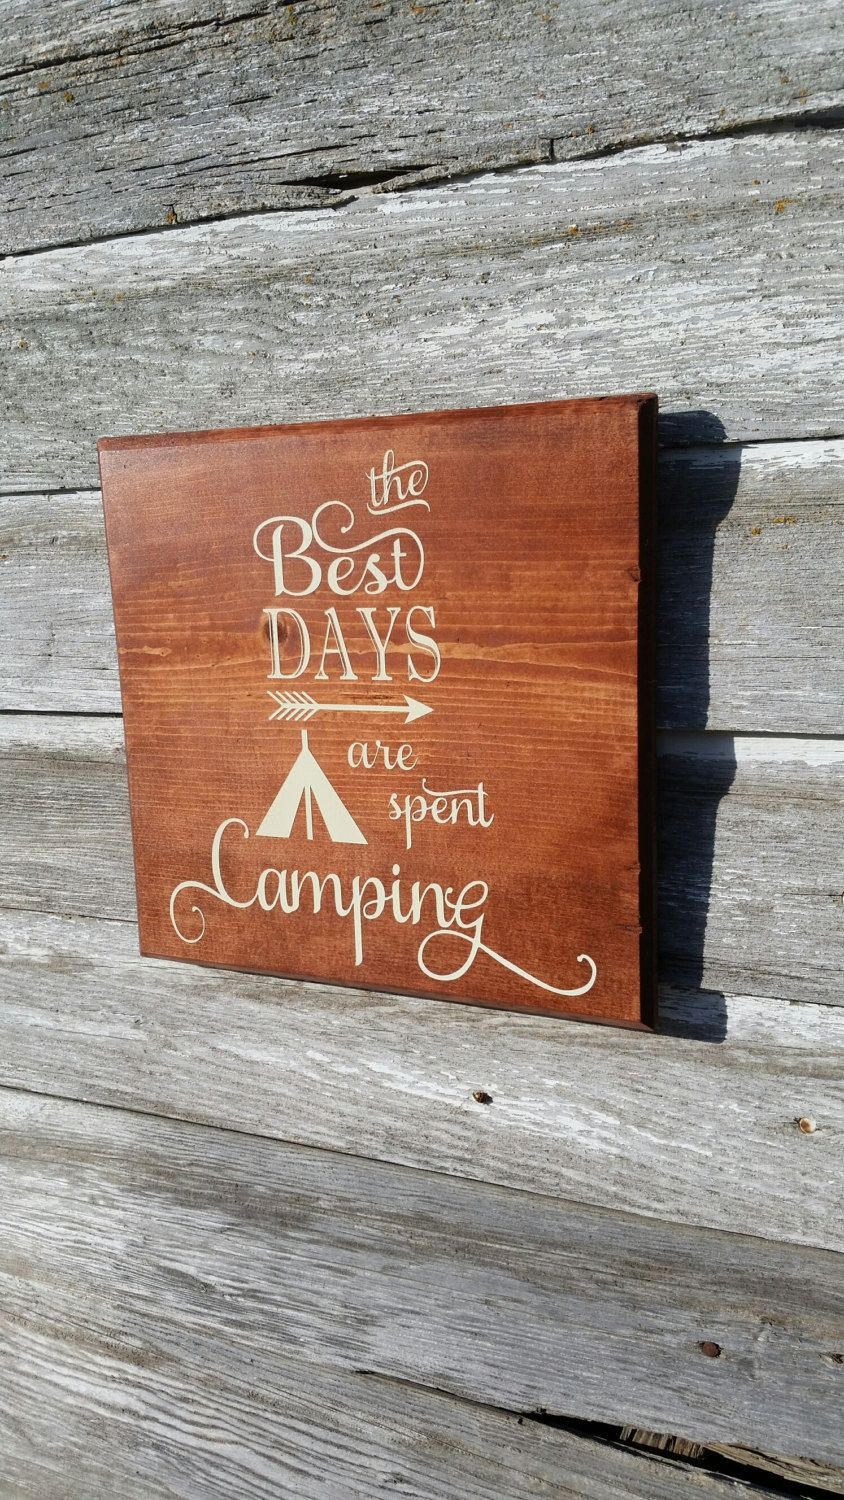 Cabin Wall Decor the best days are spent camping- hand made wood wall art/ cabin